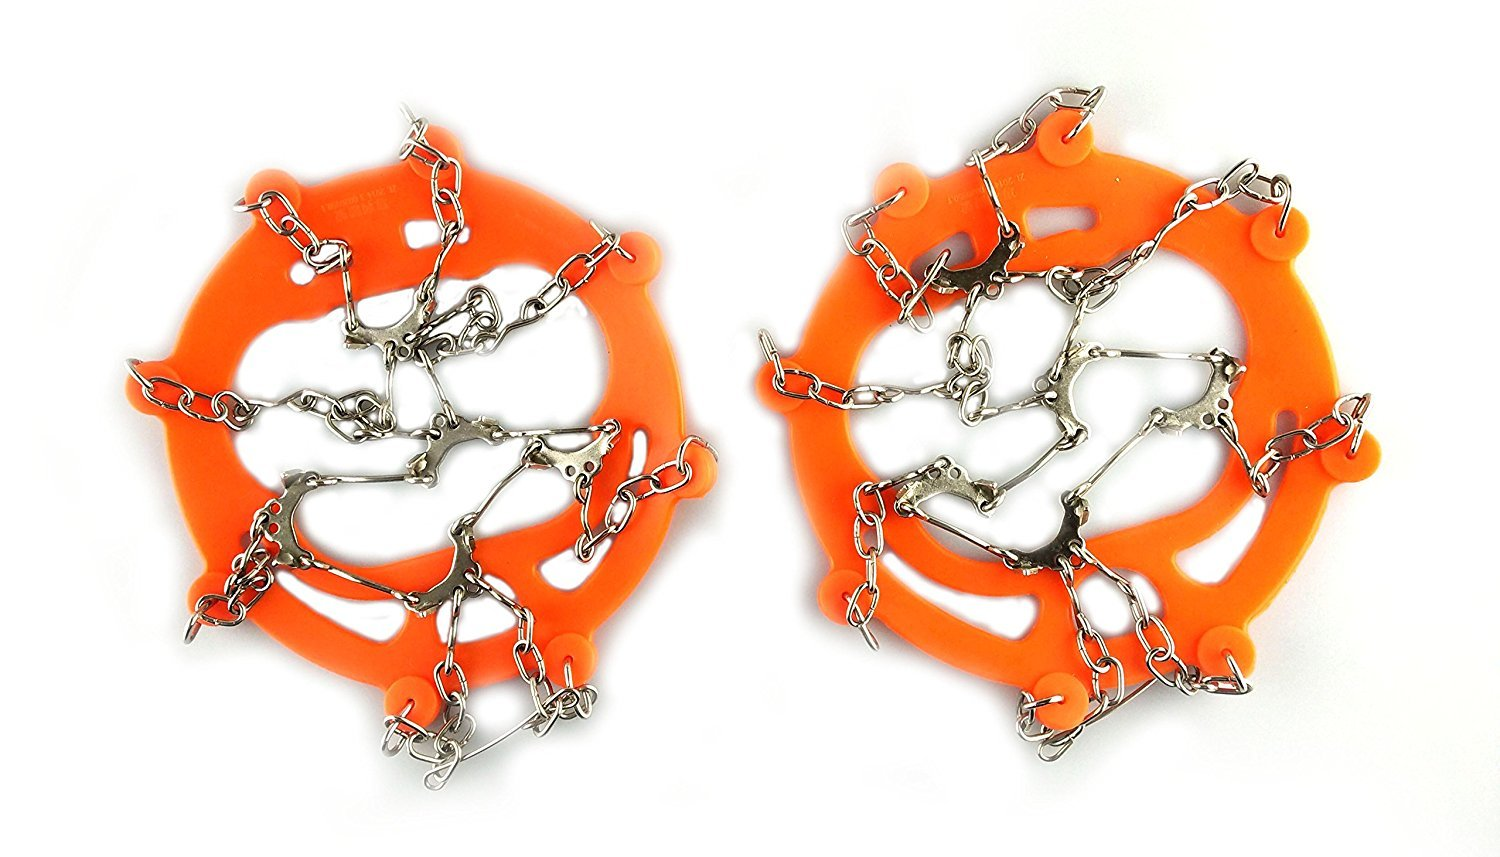 Cos2be Claw Crampon Ice Cleats Anti slips Stainless Steel Spikes For Hiking, Walking, Jogging and Outdoor Activity. (ORANGE)